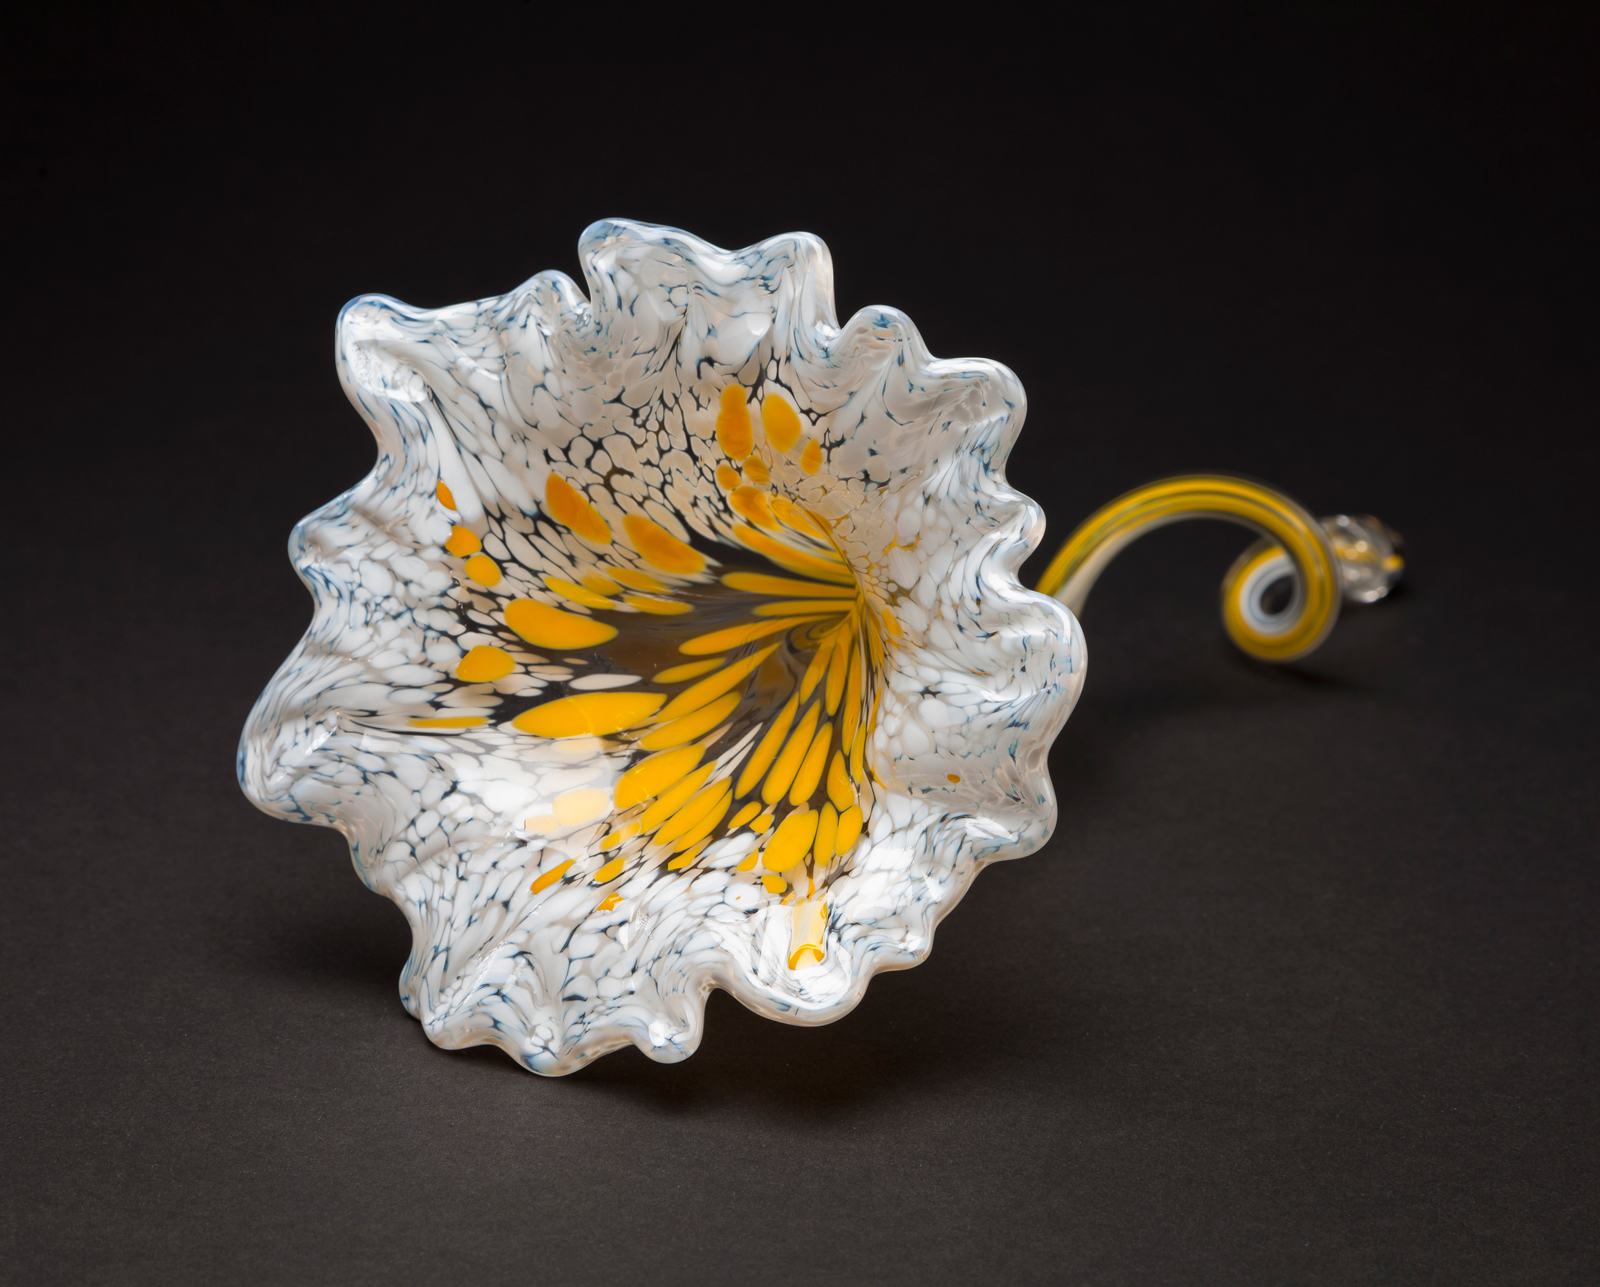 Make your own glass corning museum of glass for Flowers made of glass